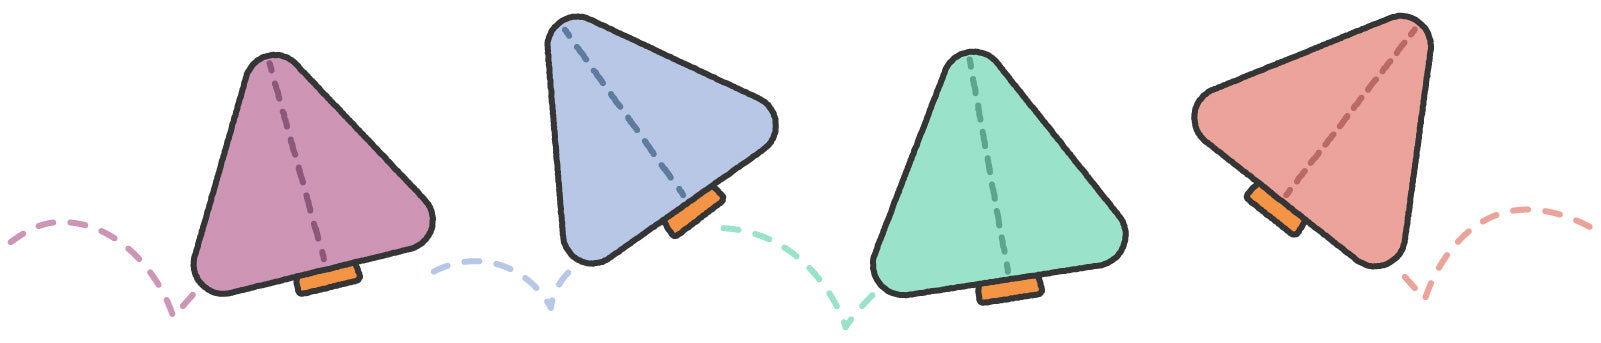 Illustration of bouncing Nugget pillows in various colors